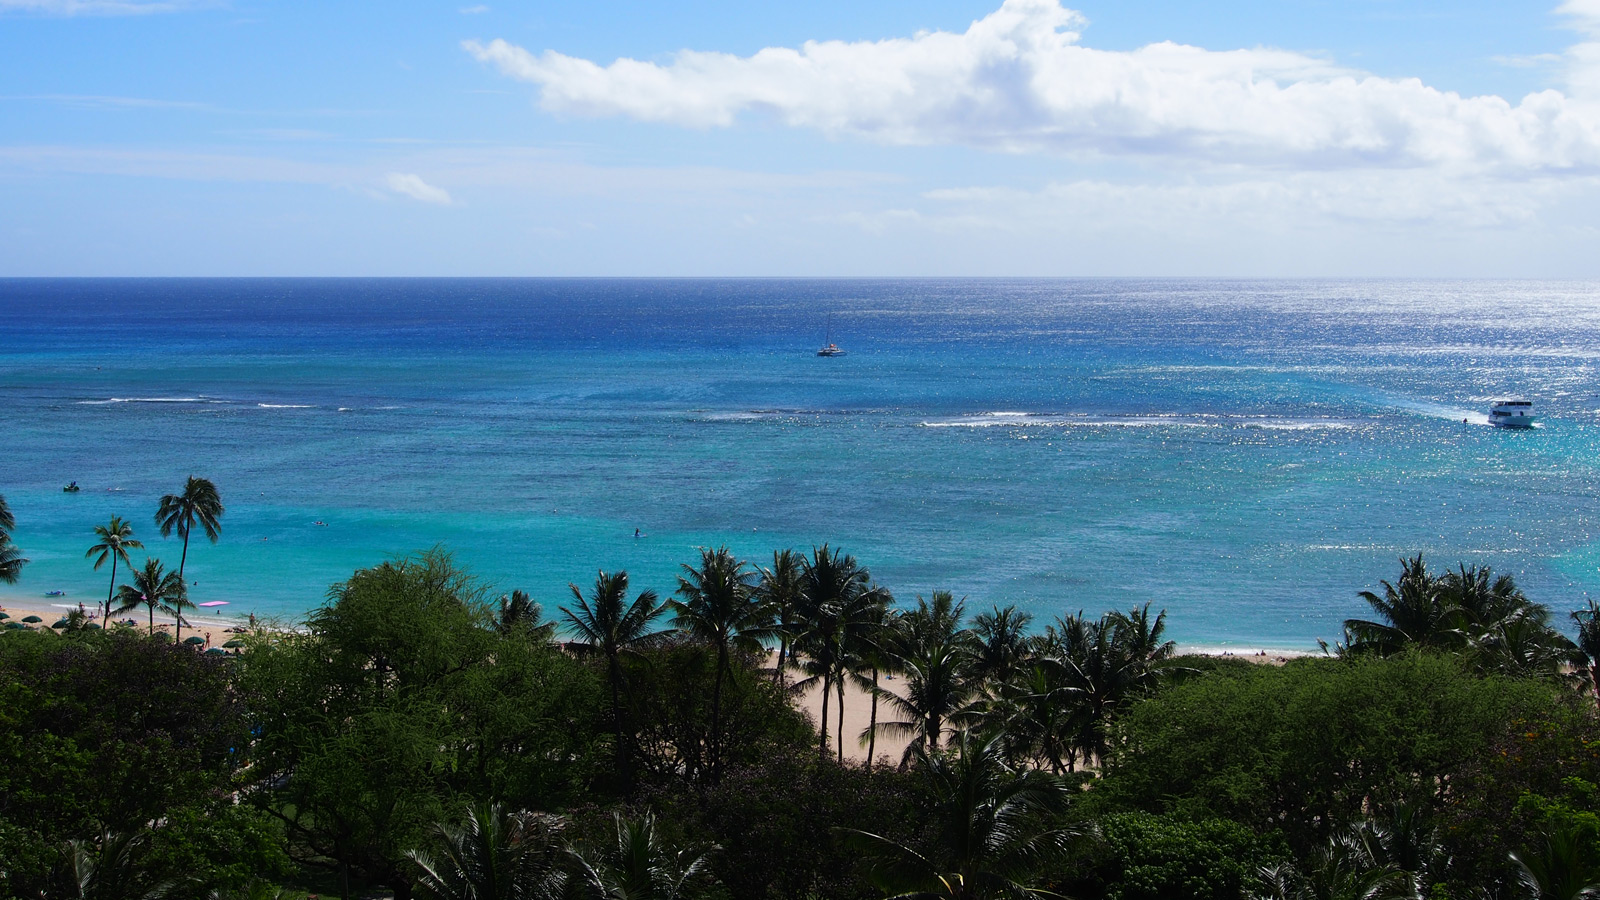 Ocean view at the Hilton Hawaiian Village